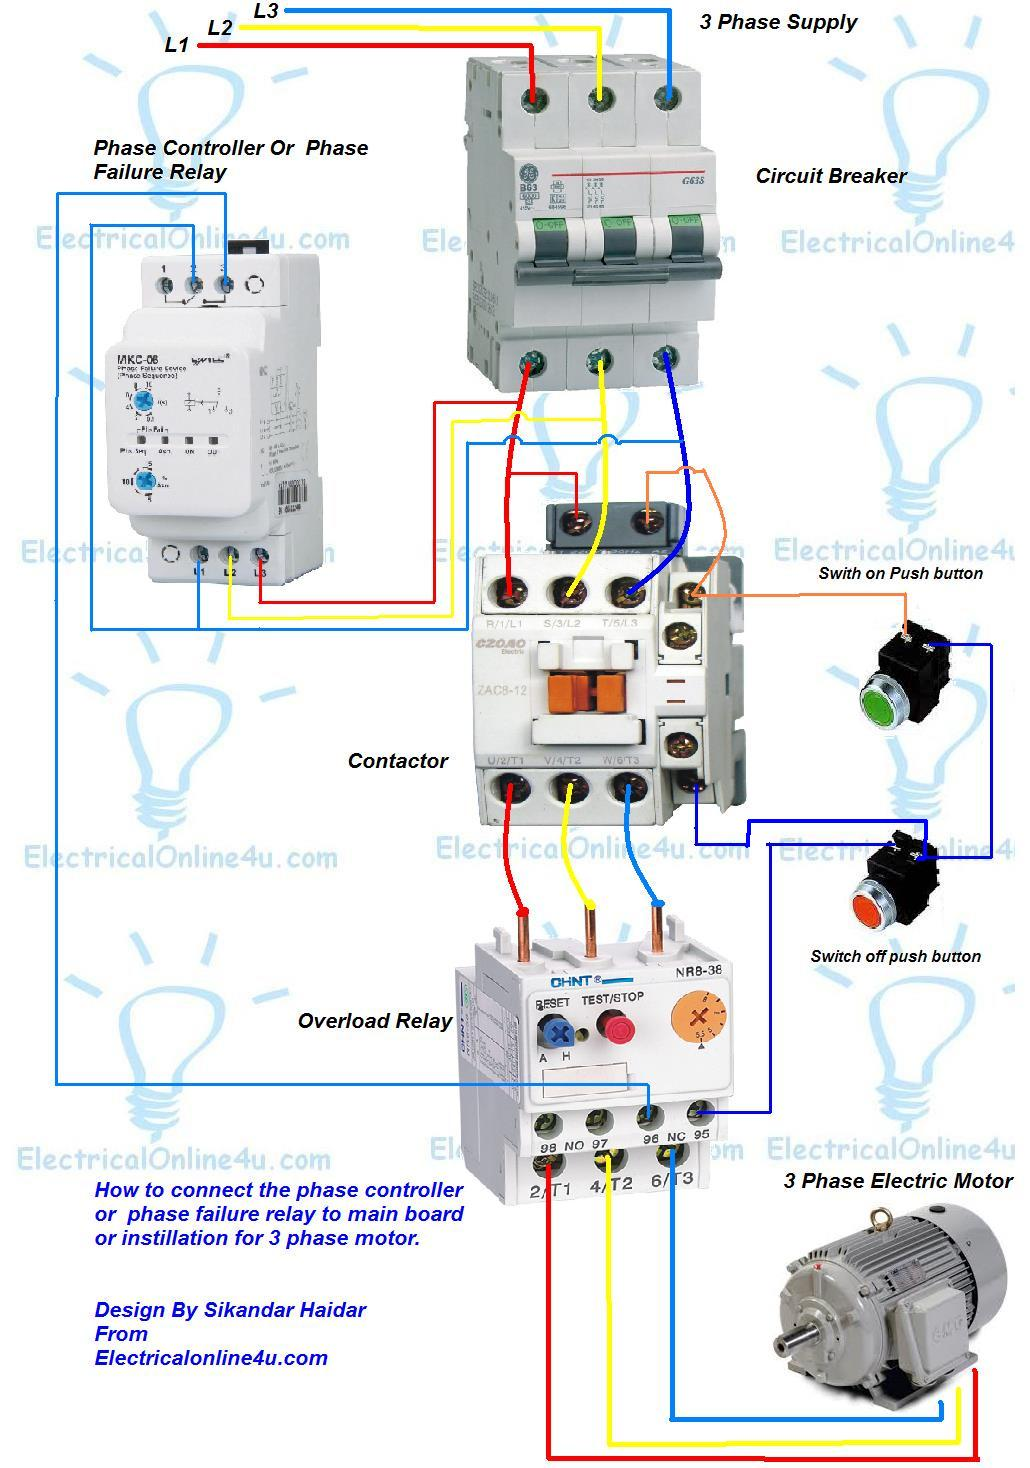 Phase%2Bfailure%2Brelay%2B %2Bphase%2Bcontroller%2Binstilaion%2Bin%2B3%2Bphase%2BMain%2Bboard%2Bor%2Bfor%2B3%2Bphase%2Bmotor phase controller wiring phase failure relay diagram electrical wiring diagram relay at edmiracle.co